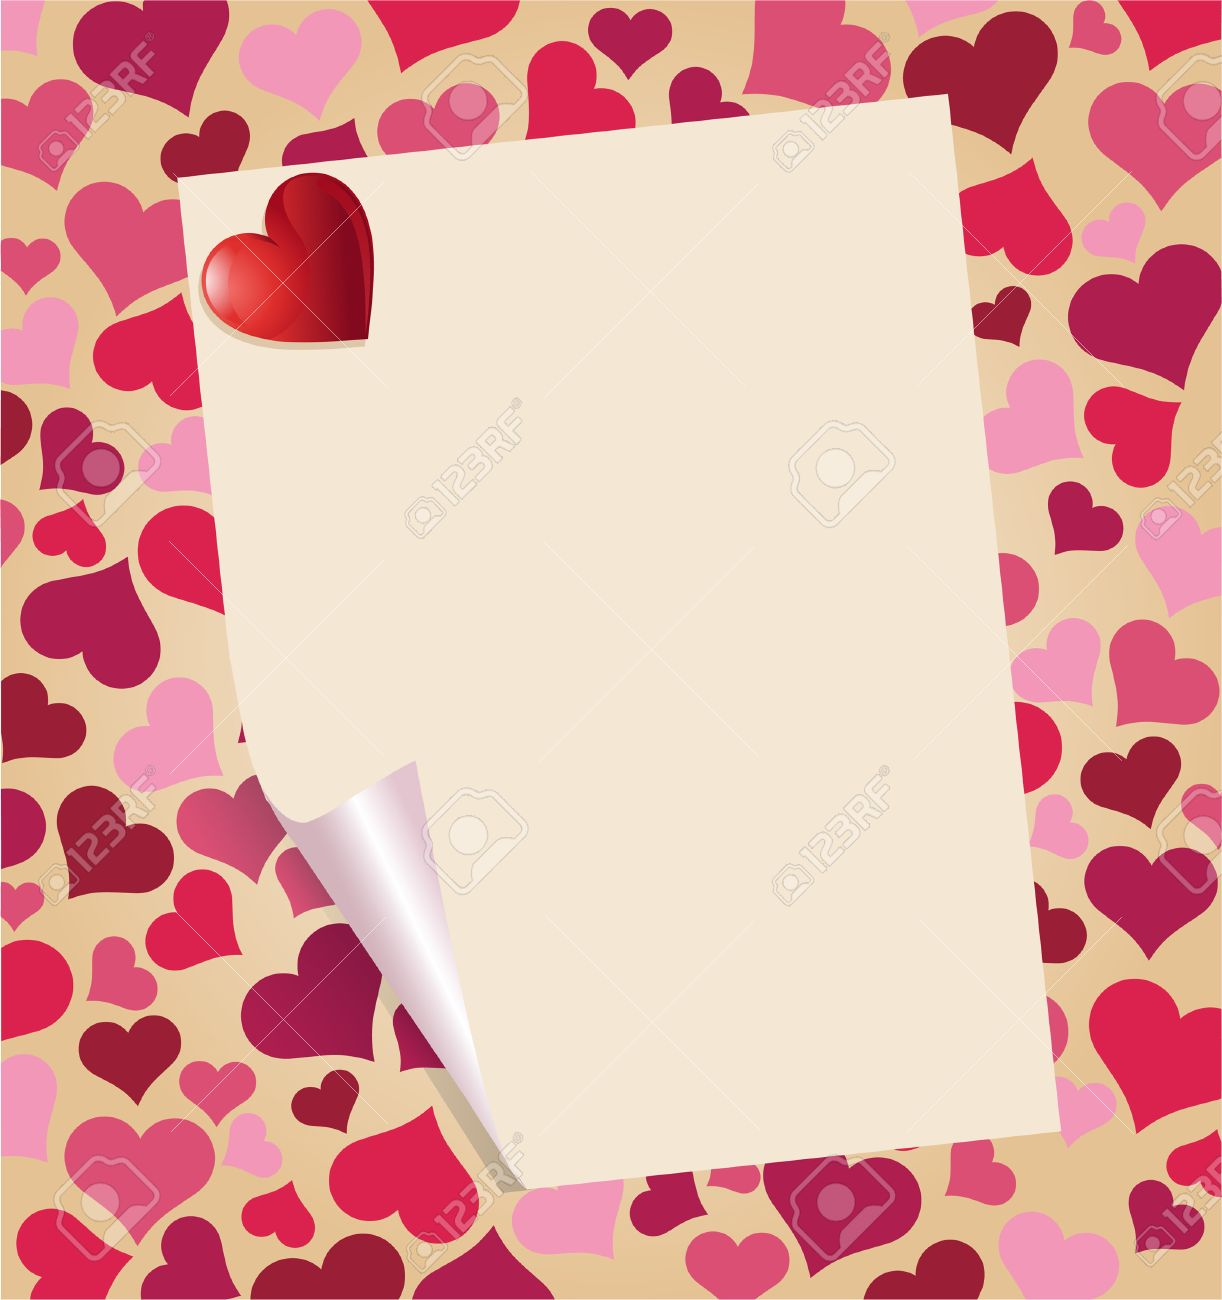 Love Letter With Heart Over Beautiful Valentine's Day Background